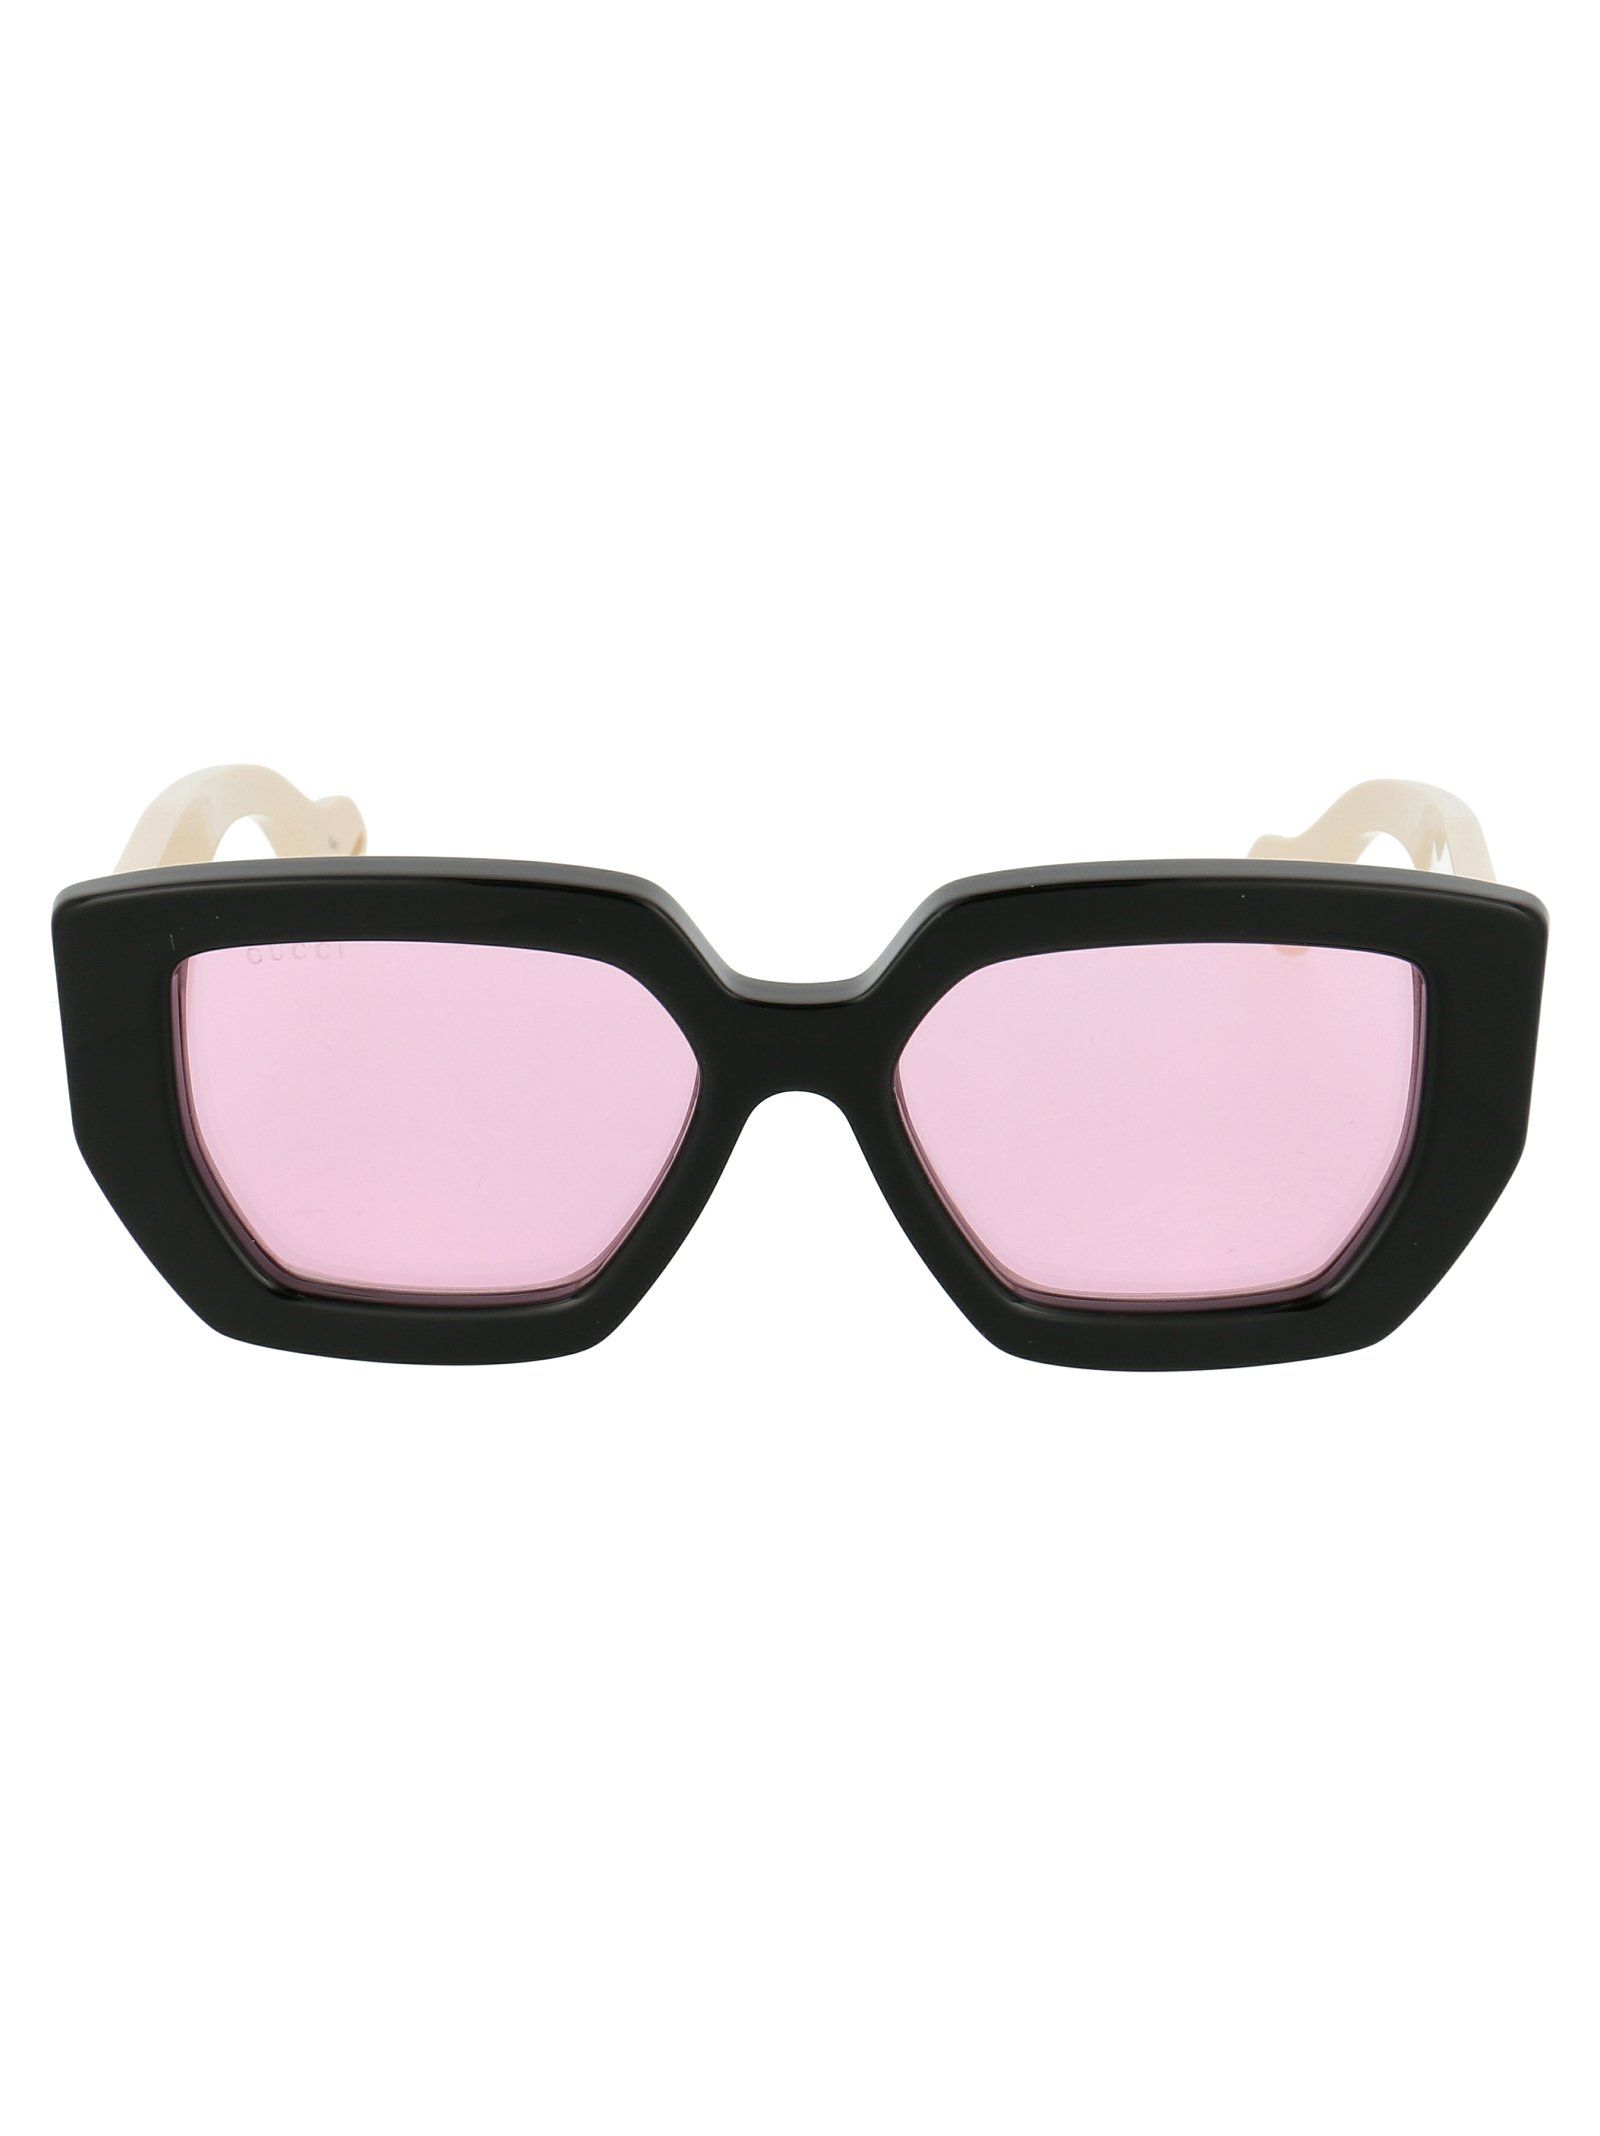 GUCCI GUCCI EYEWEAR HEXAGON SUNGLASSES. #gucci